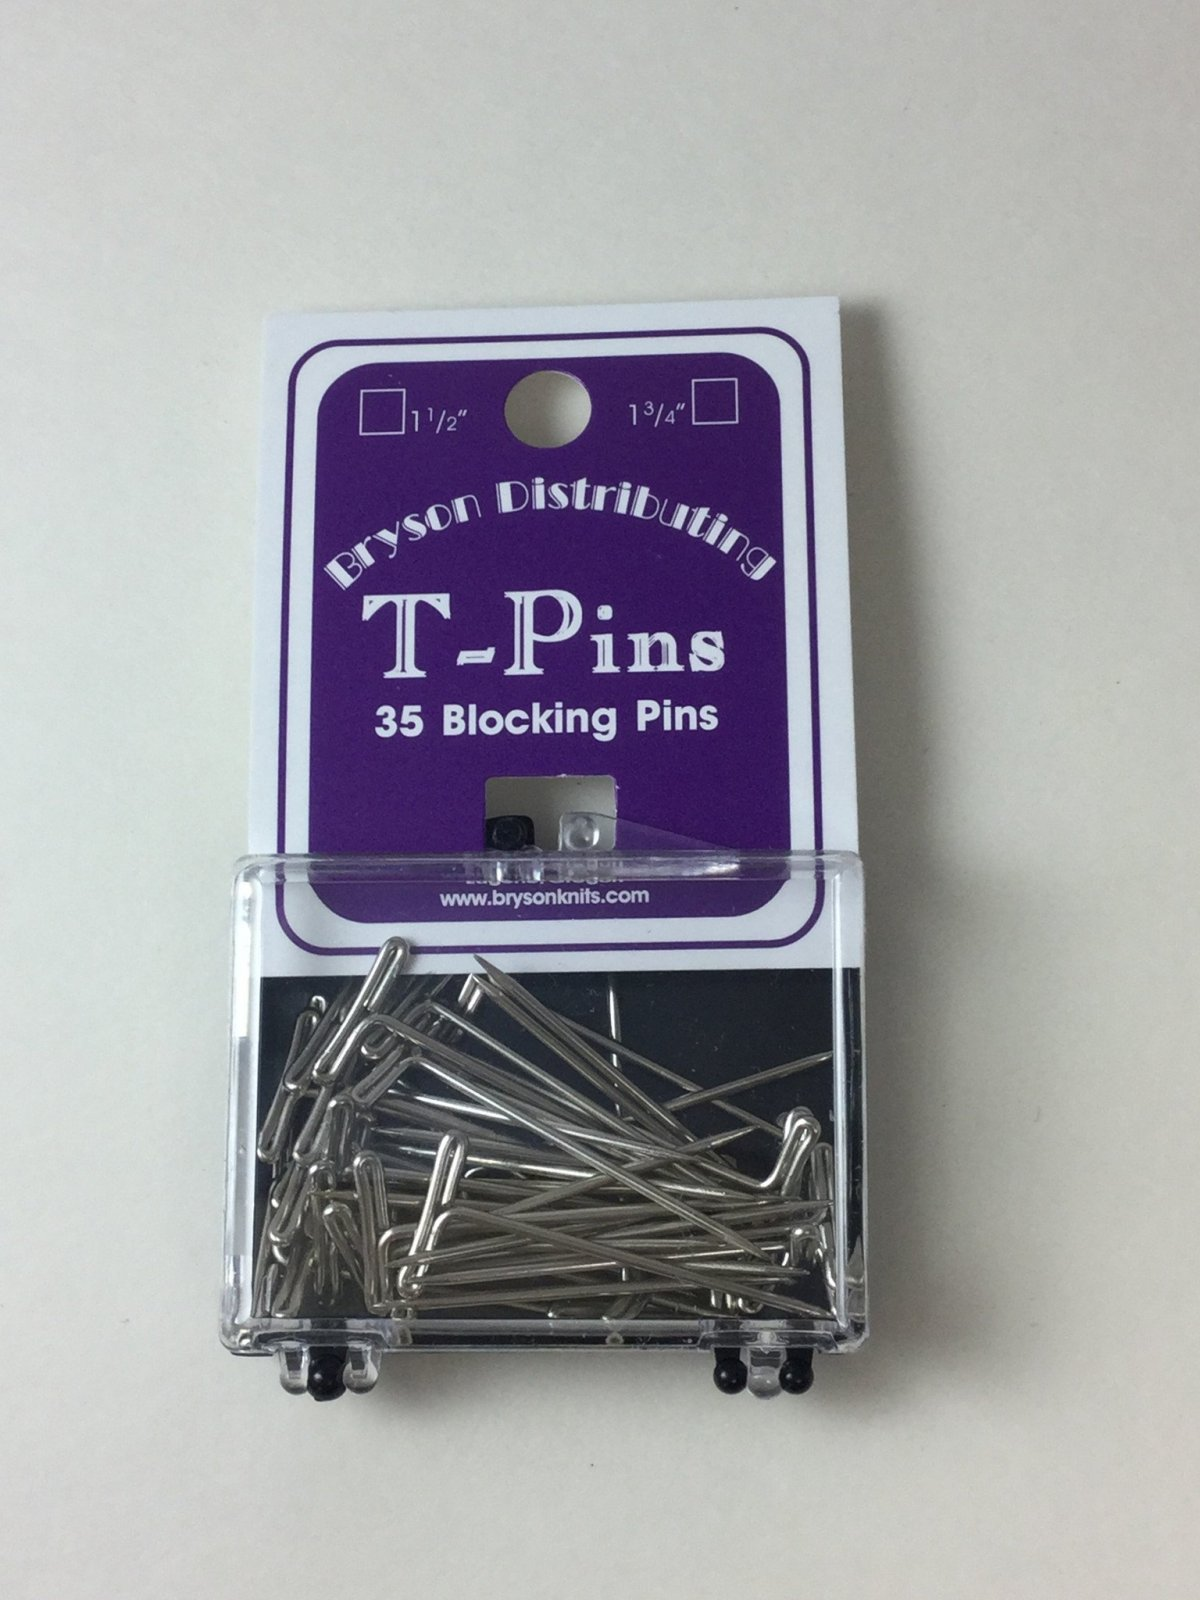 T-pins by Bryson